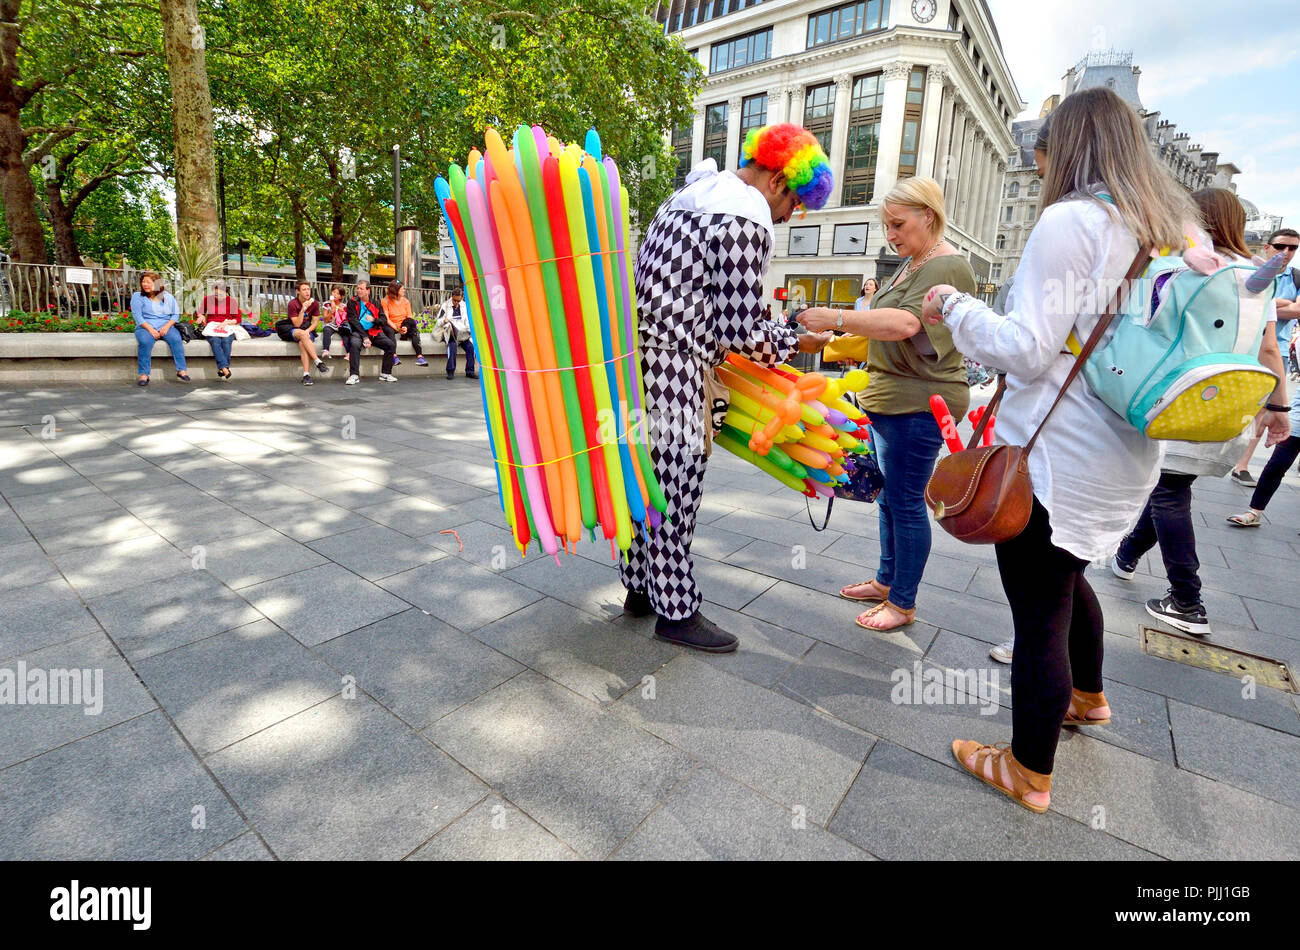 Clown selling balloon animals in Leicester Square, London, England, UK. - Stock Image